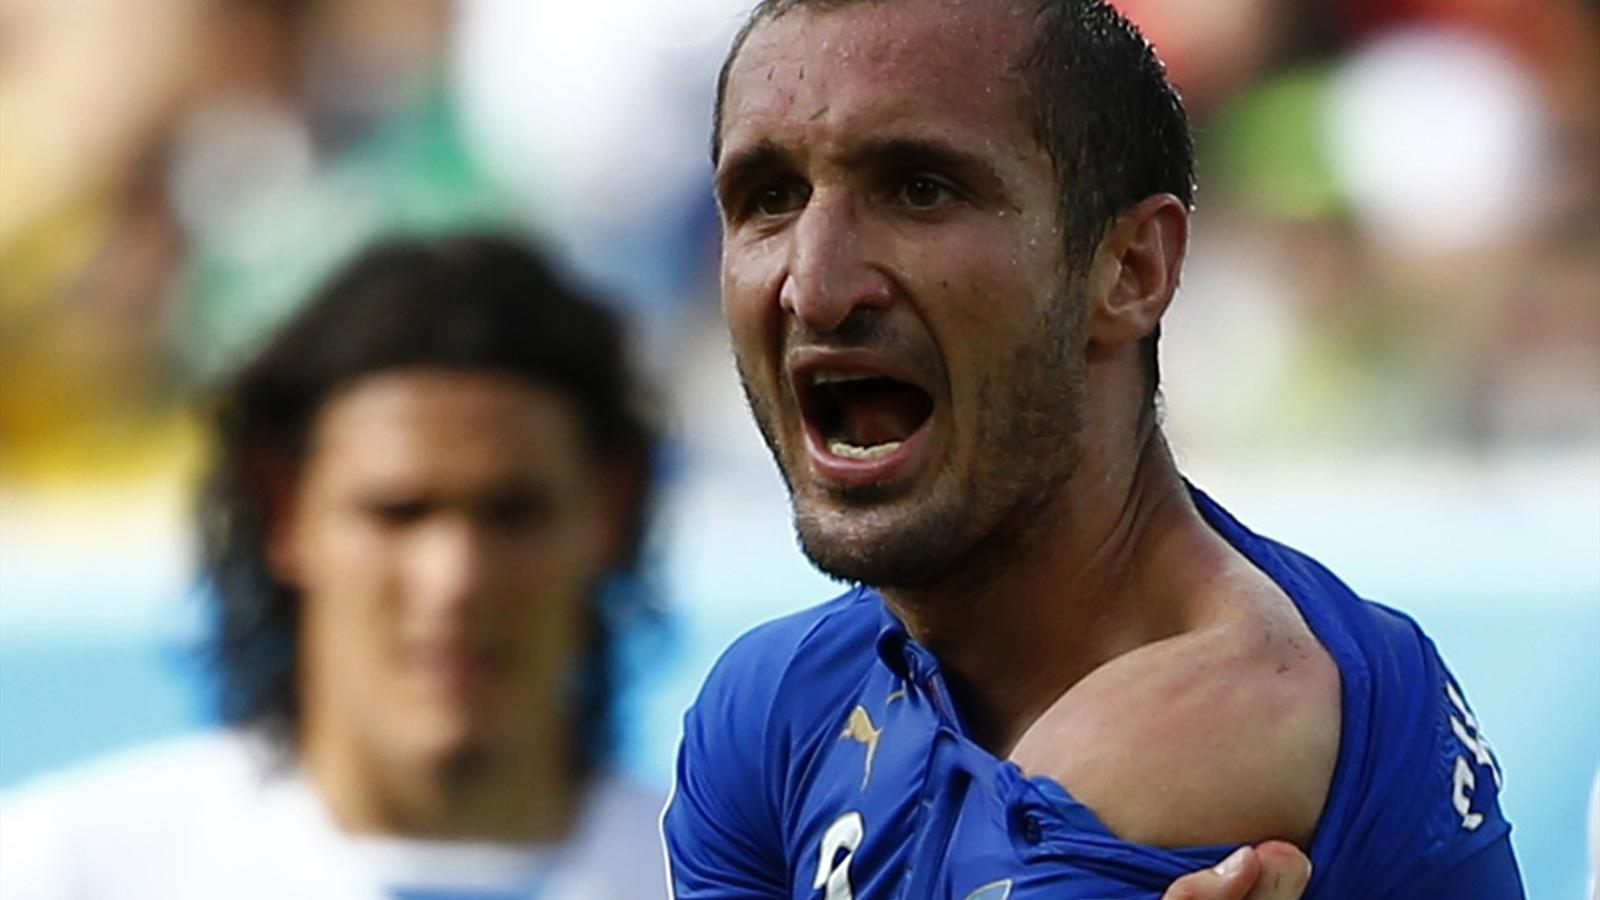 Italy's Giorgio Chiellini shows his shoulder, claiming he was bitten by Uruguay's Luis Suarez (Reuters)